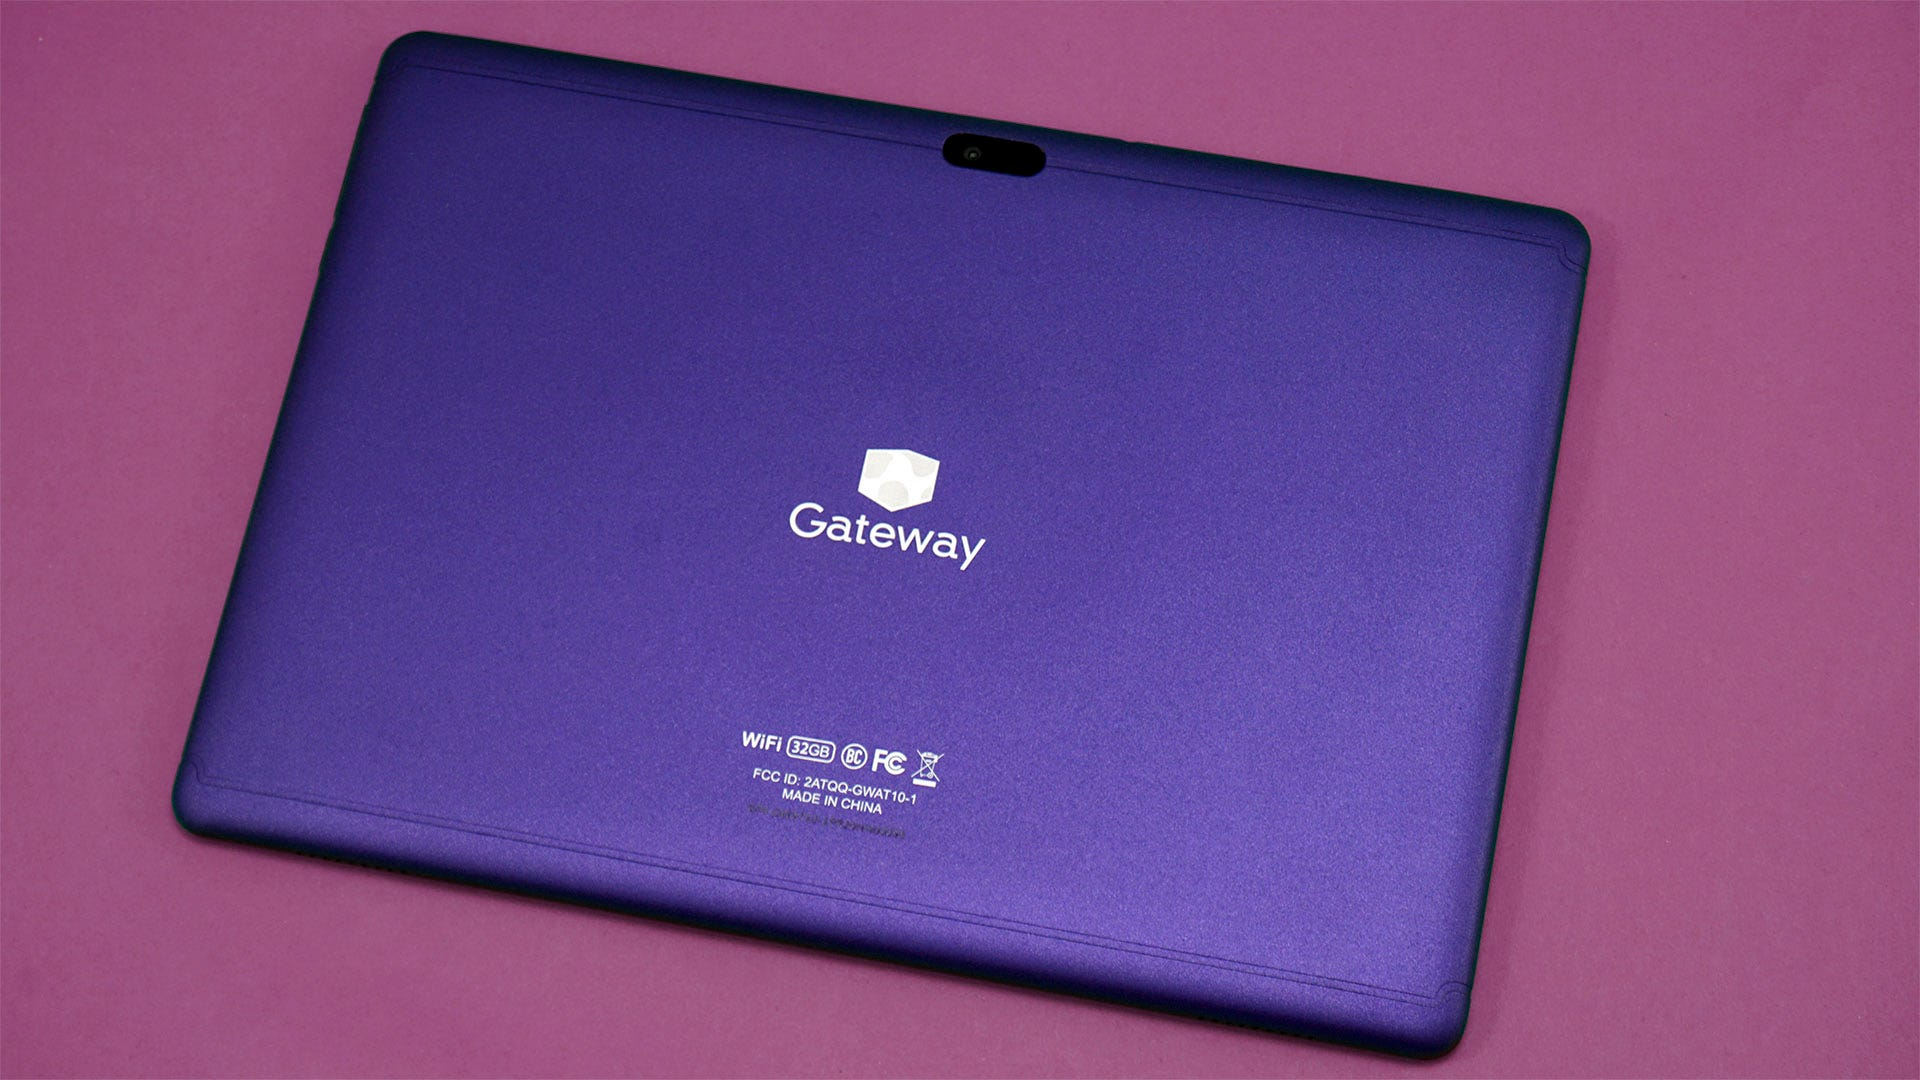 Gateway Android tablet